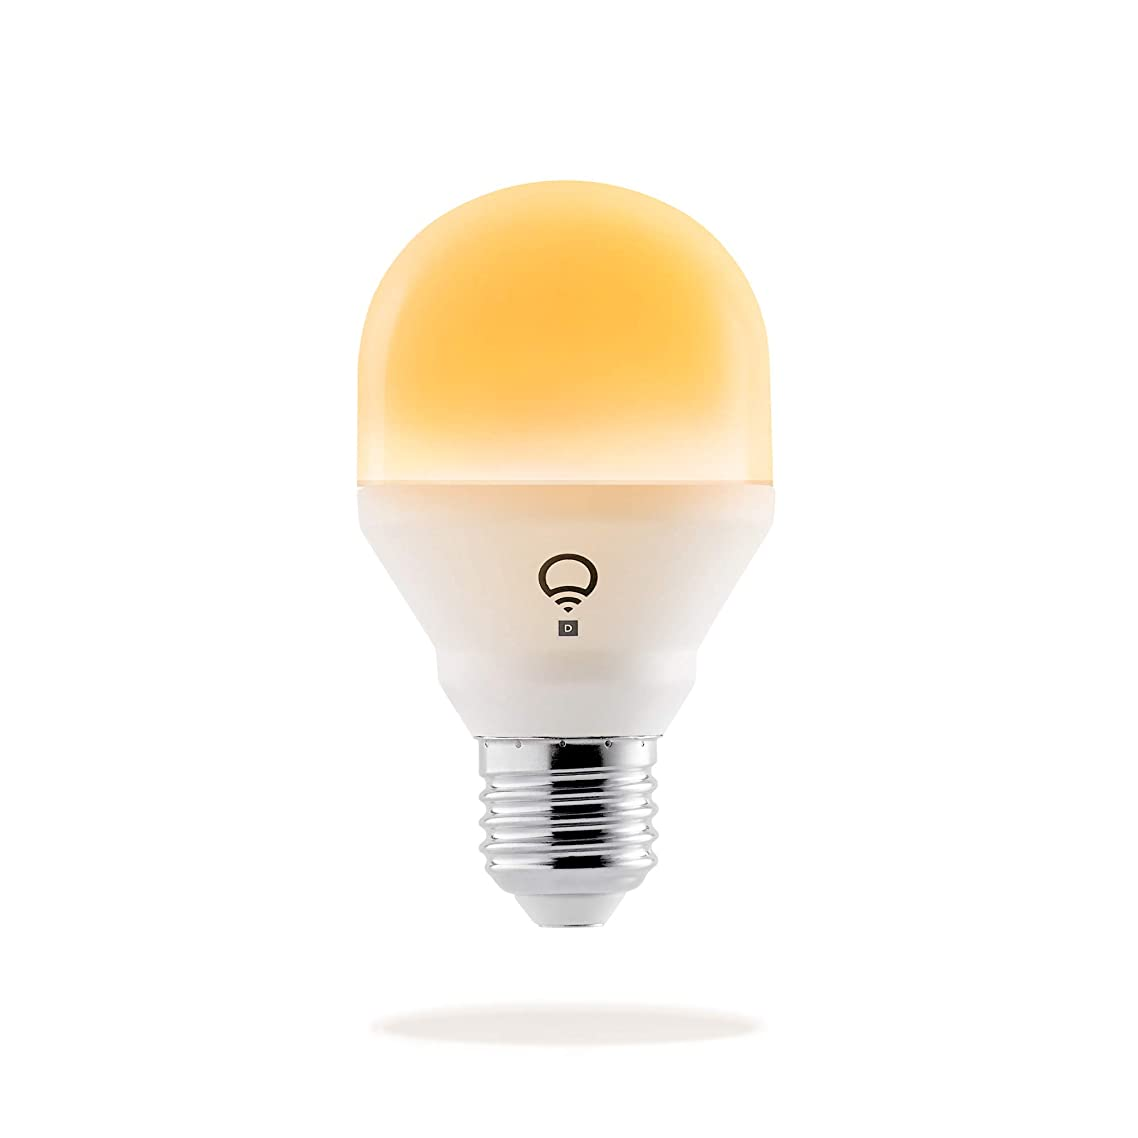 LIFX Mini Day & Dusk (A19) Wi-Fi Smart LED Light Bulb, Adjustable, Dimmable, No Hub Required, Works with Alexa, Apple HomeKit and the Google Assistant - L3A19MTW08E26, White